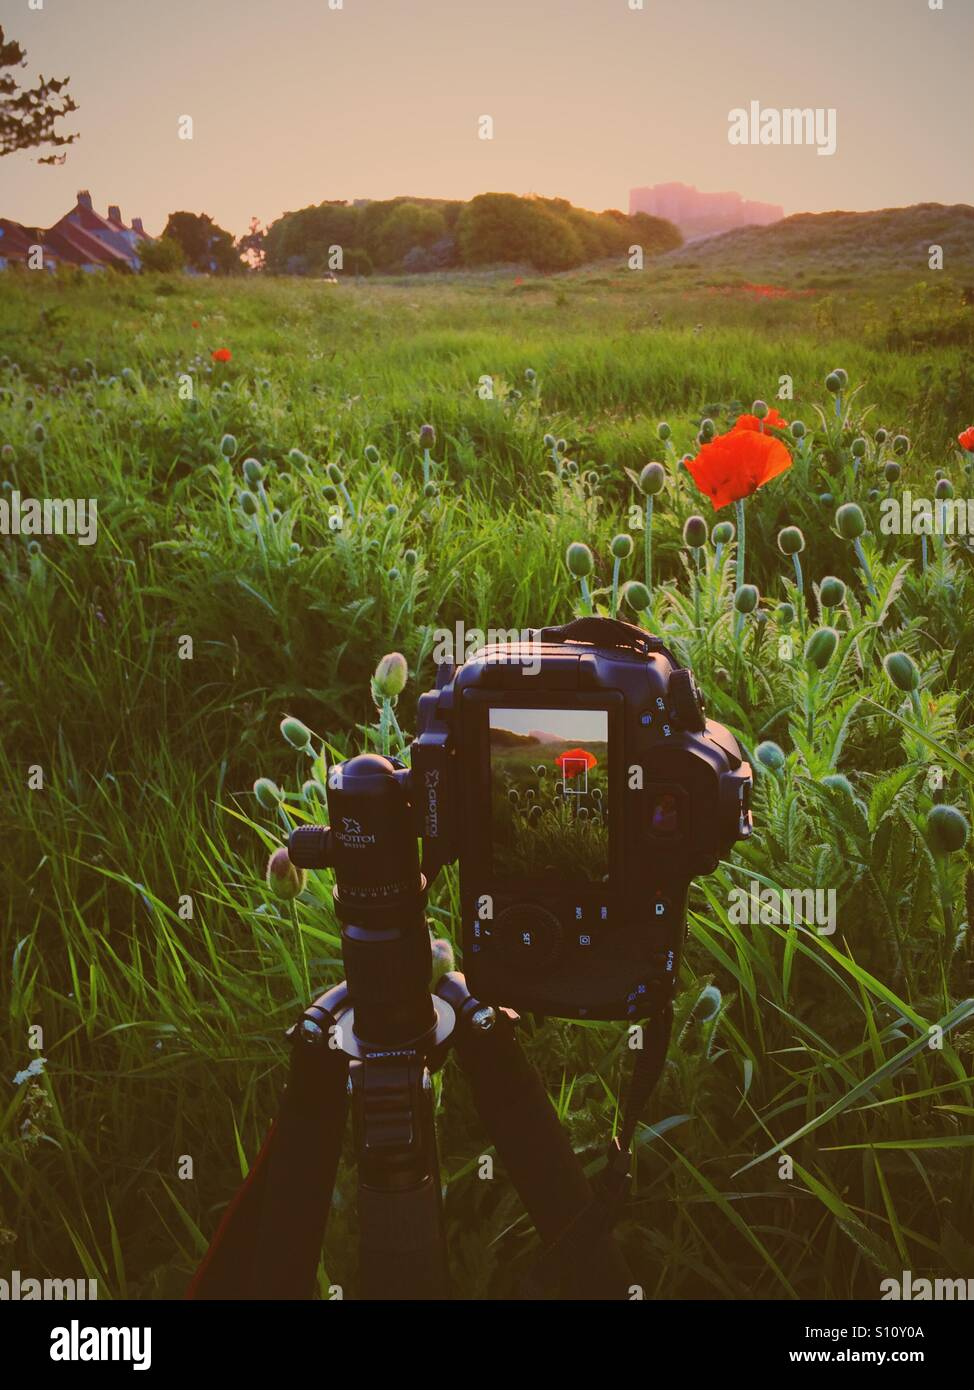 Taking photograph of poppies at Bamburgh castle - Stock Image